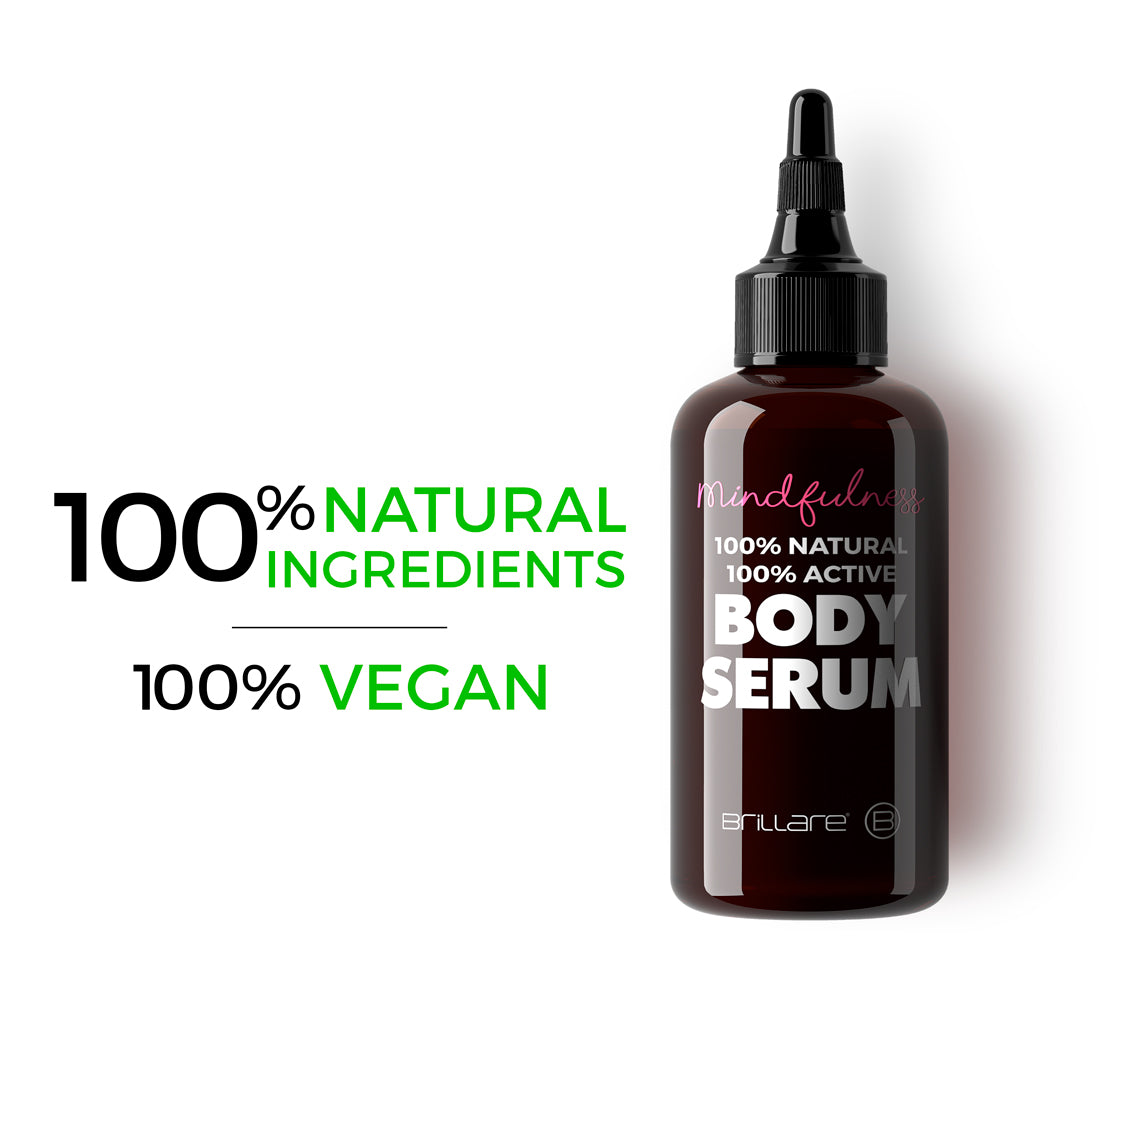 Mindfulness 100% Natural Body Serum